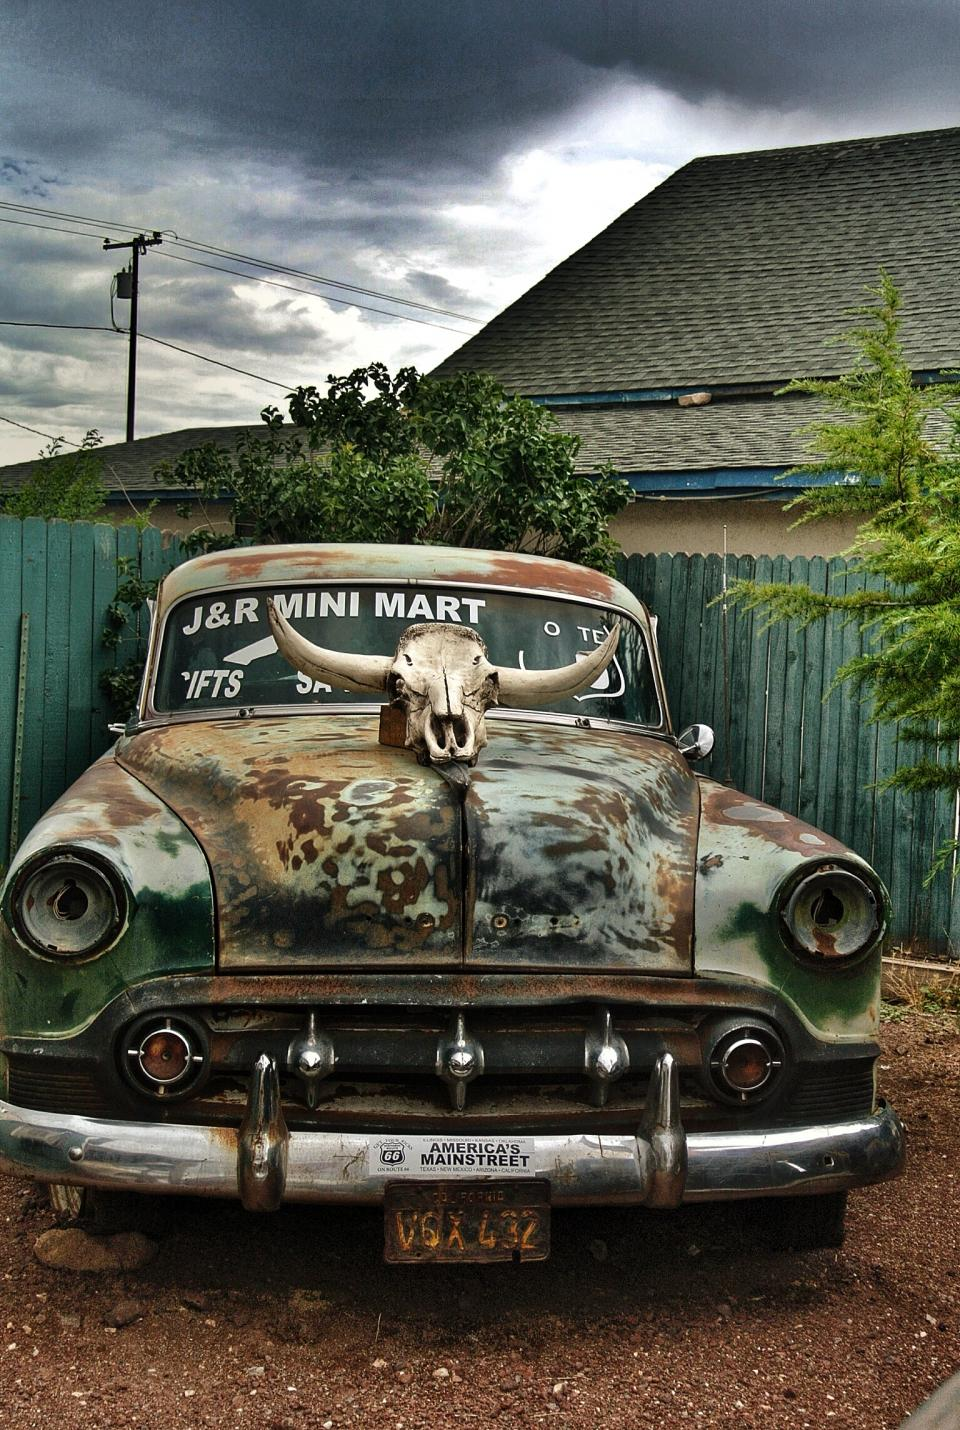 vintage car automobile automotive abandoned antique vehicle rusty outside house roof